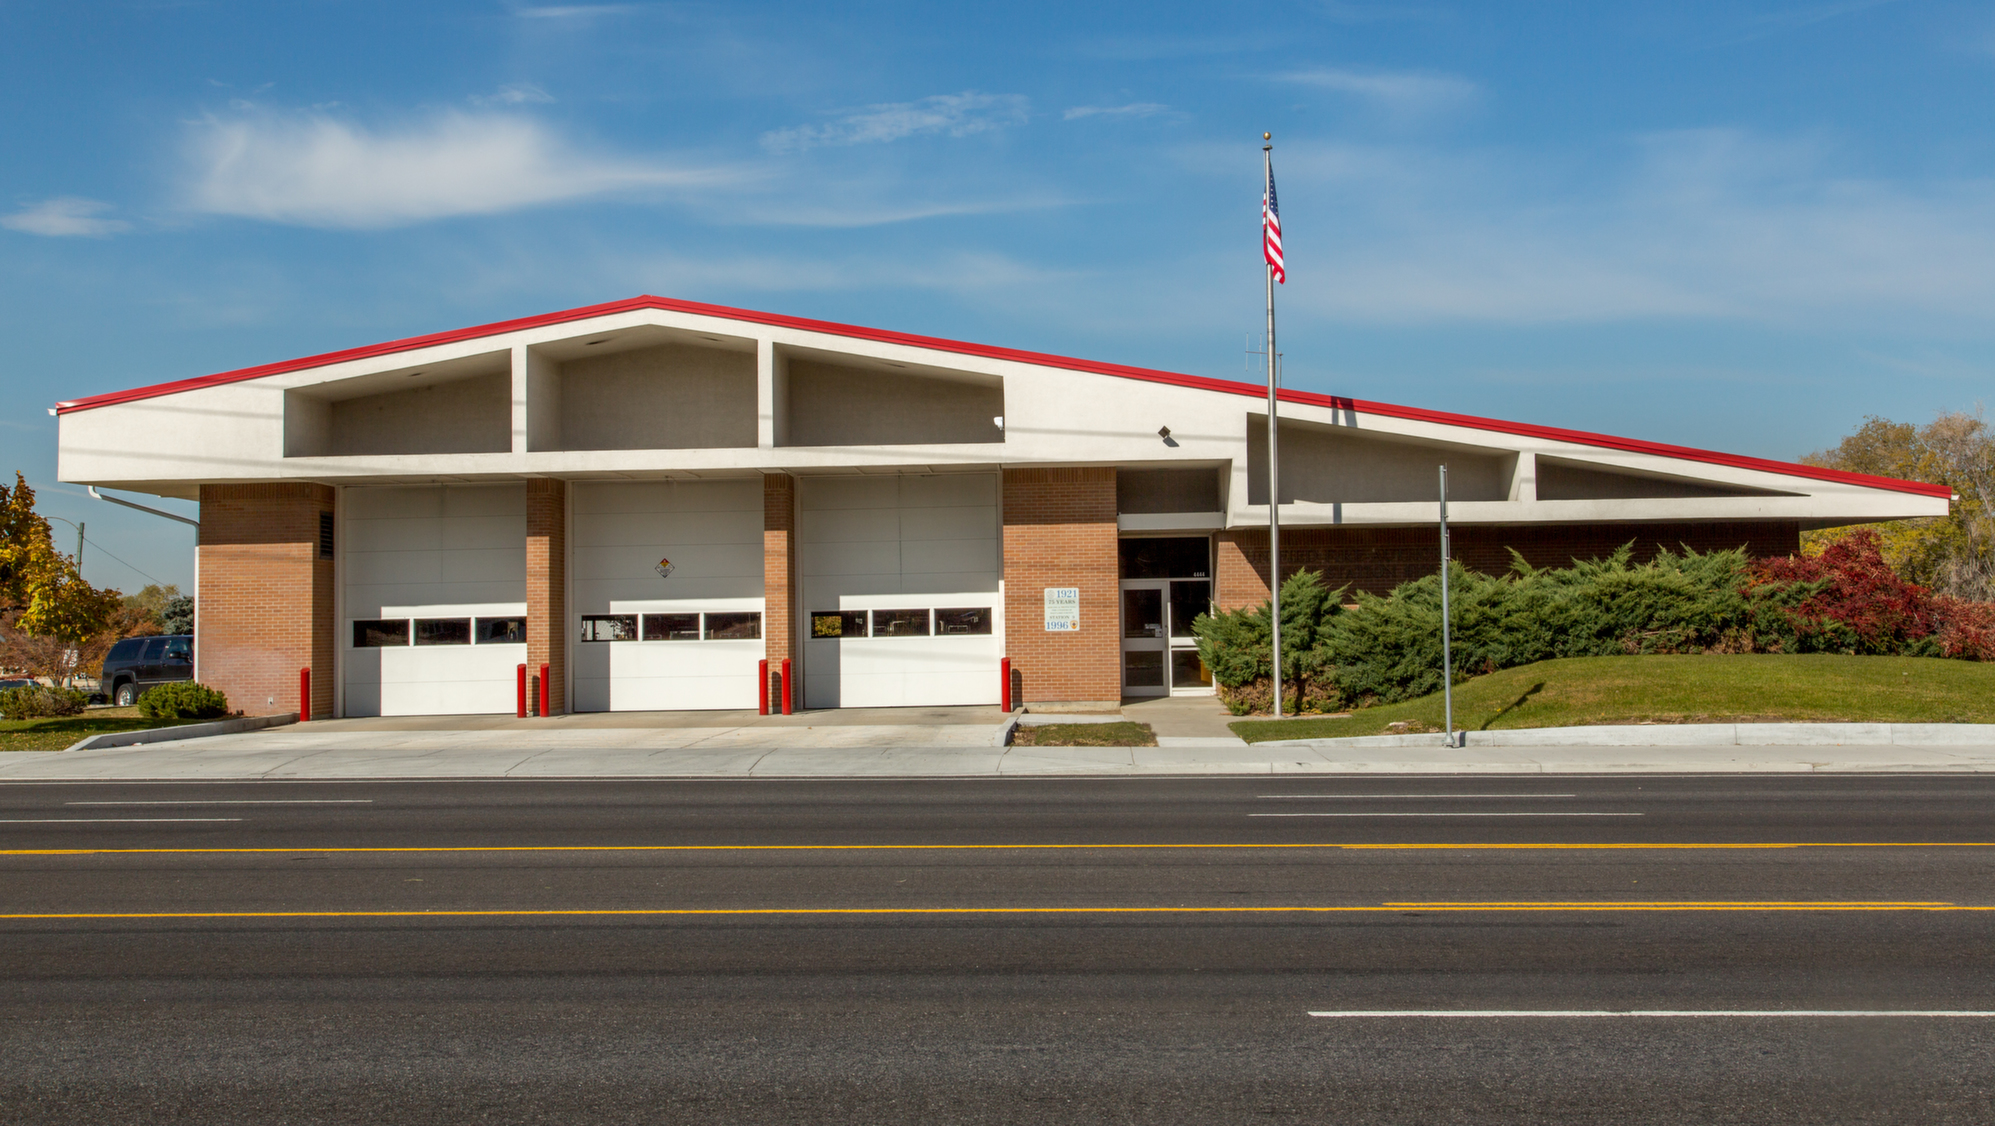 Station 109 4444 West 5415 South Kearns, UT 84118